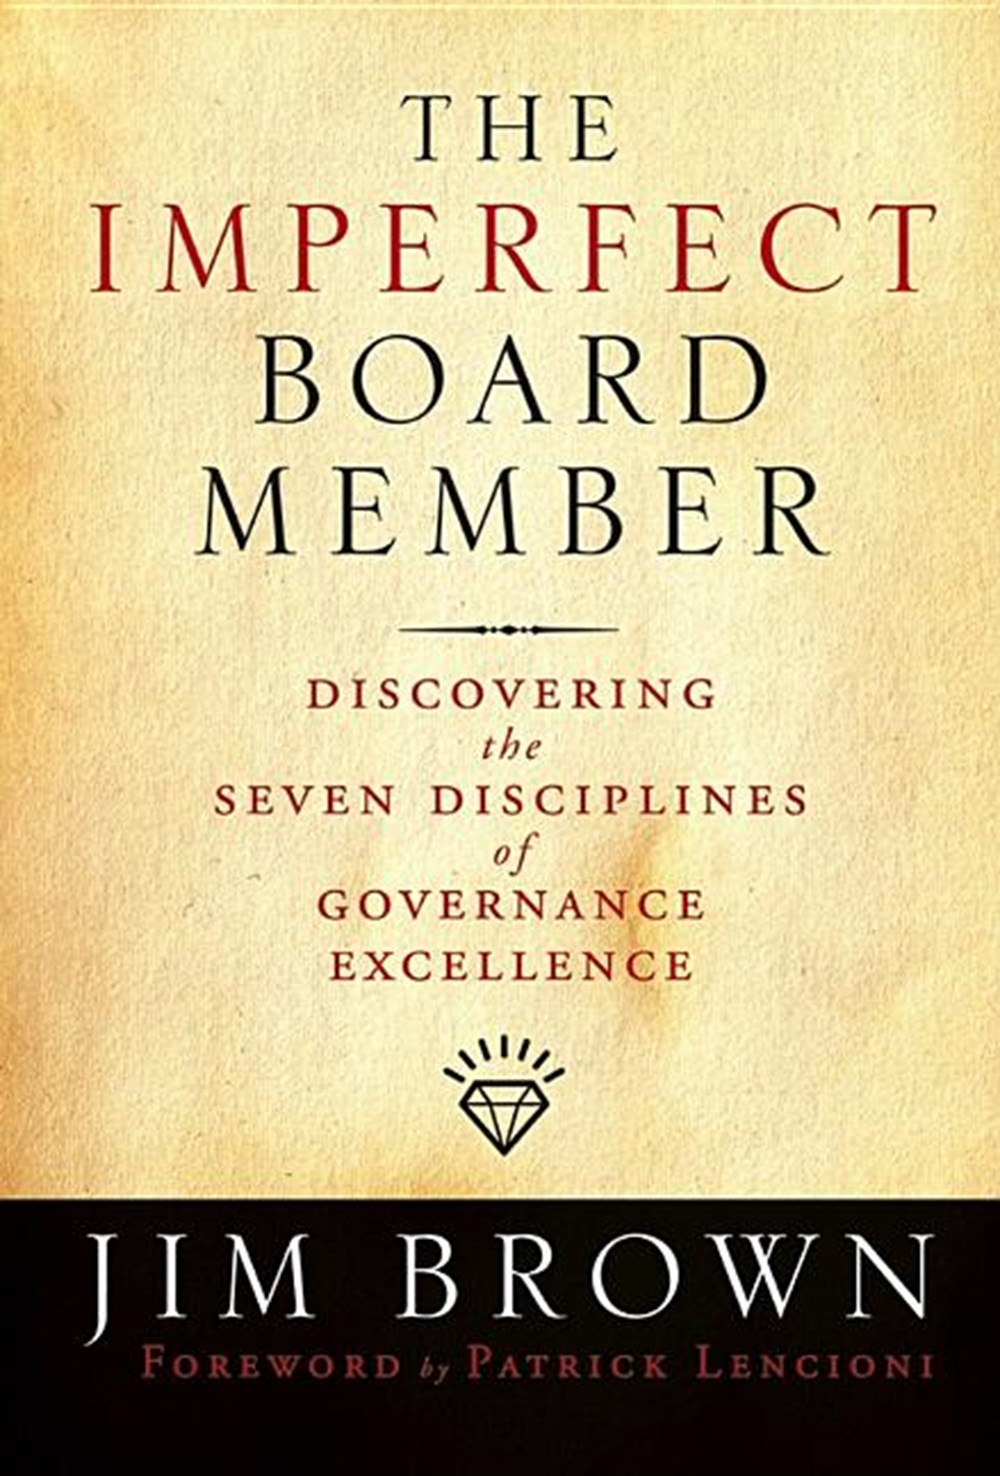 Imperfect Board Member Discovering the Seven Disciplines of Governance Excellence